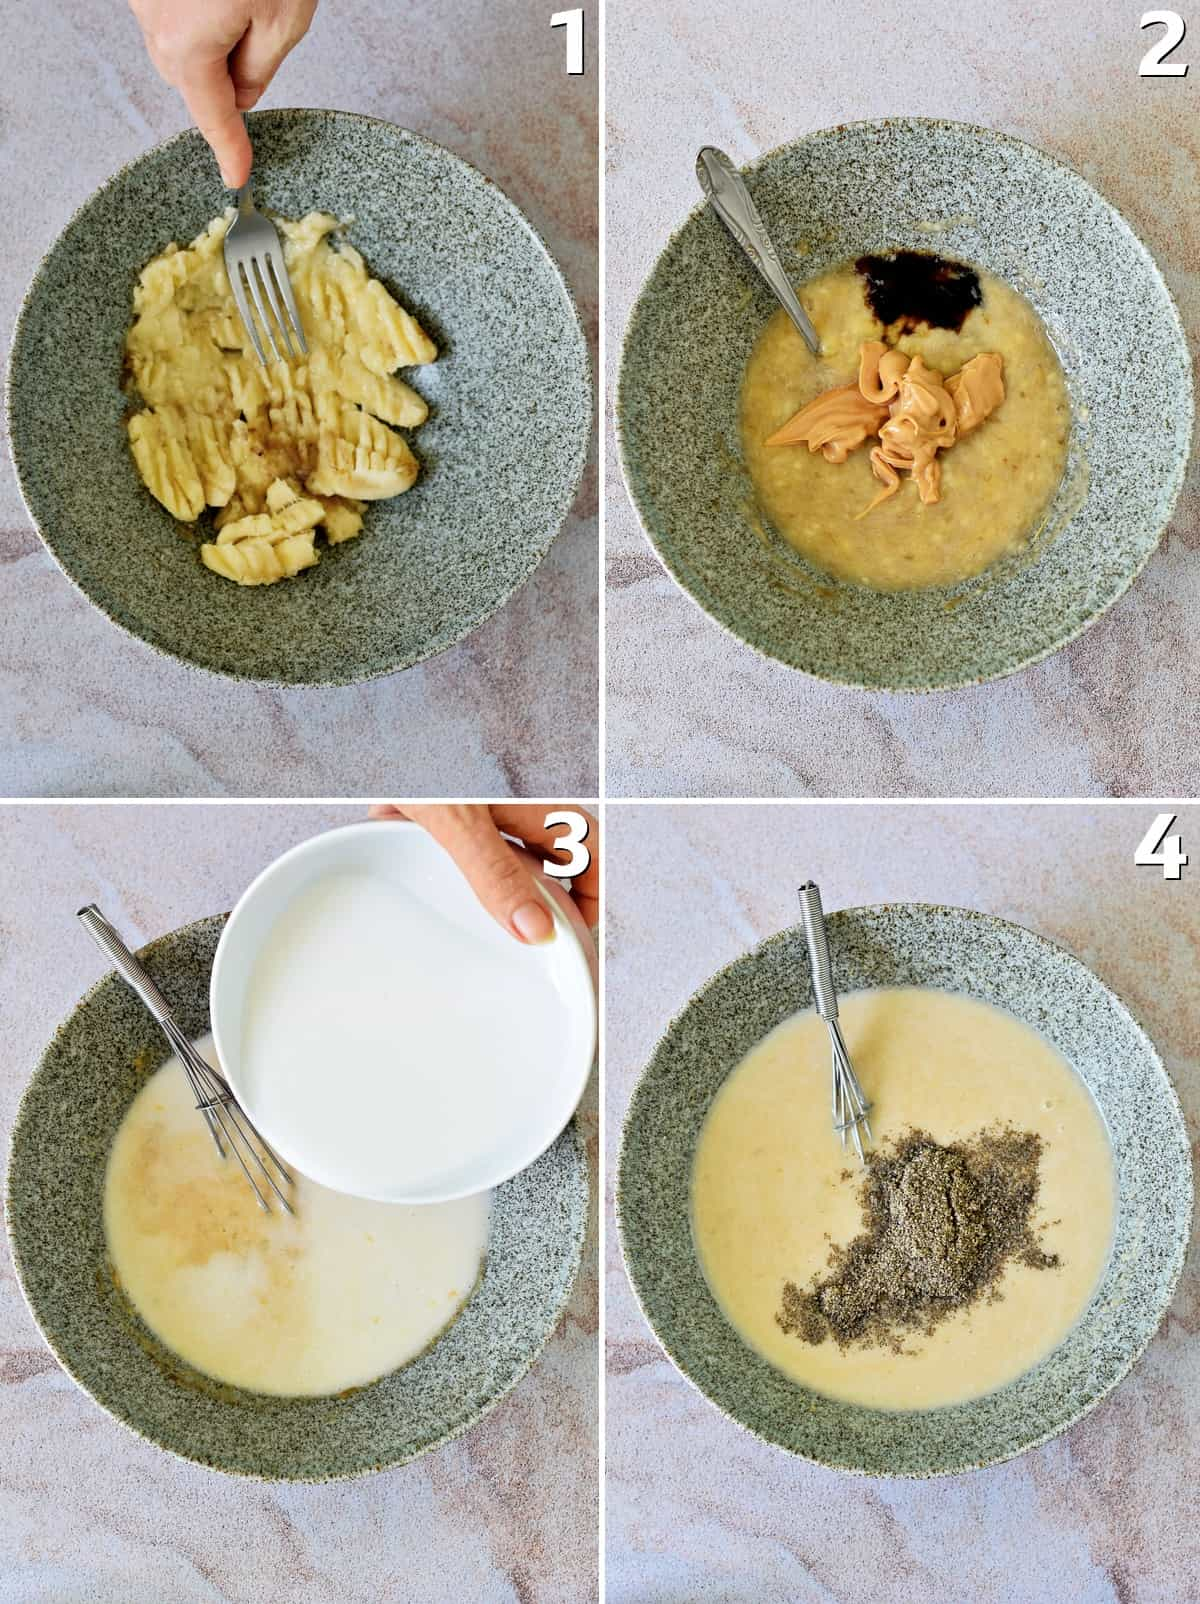 4 step-by-step photos showing how to make banana peanut butter batter